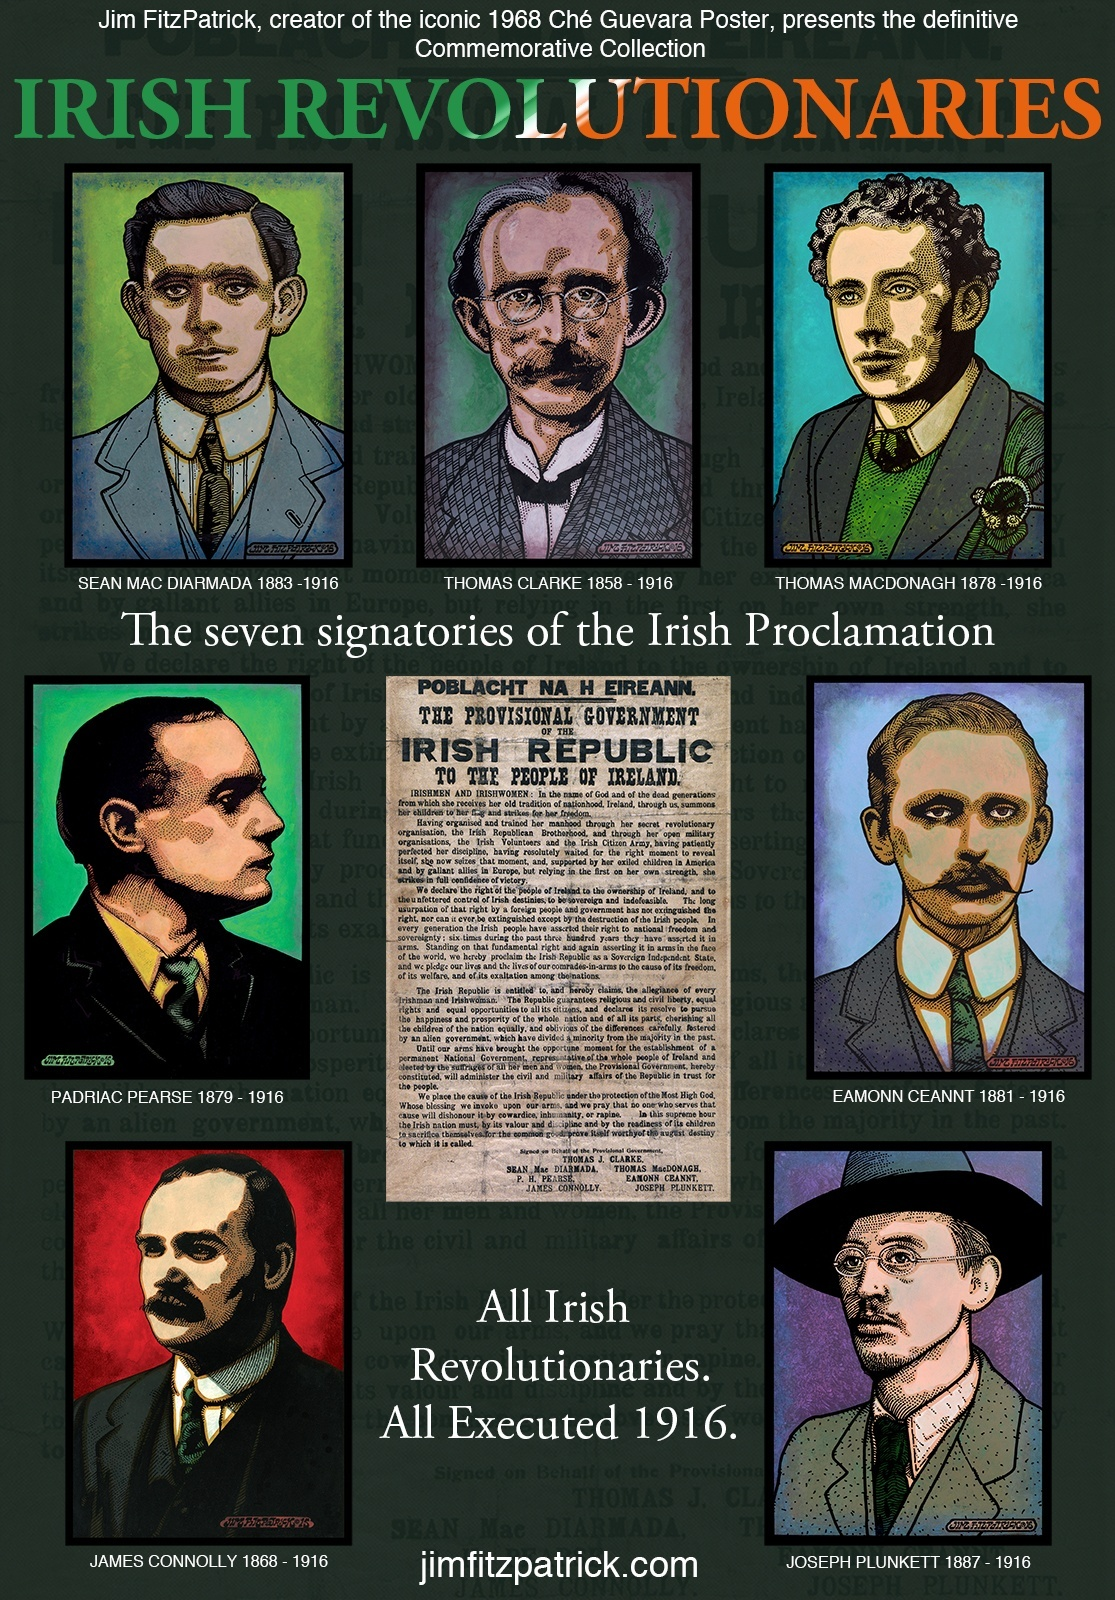 #JamesConnolly #PadraicPearse #SirRogerCasement #RogerCasement #ÉamonnCeannt #JosephPlunkett #Ceannt #Plunkett #SeánMacDiarmada #MacDiarmada #ThomasMacDongh #MacDonagh #MichaelCollins #TomClarke #ThomasClarke #CountessMarkievicz #Markievicz #Connolly #Casement #Collins #Clarke #Pearse #easterrising #1916 #1916centenary #1916rising #IrishRevolution #IrishRevolutionary #IrishRevolutionaries #Easter1916 #Reclaim1916 #reclaimtherevolution #revolutionnow #wewillremember #Ireland #Irish #JimFitzPatrick